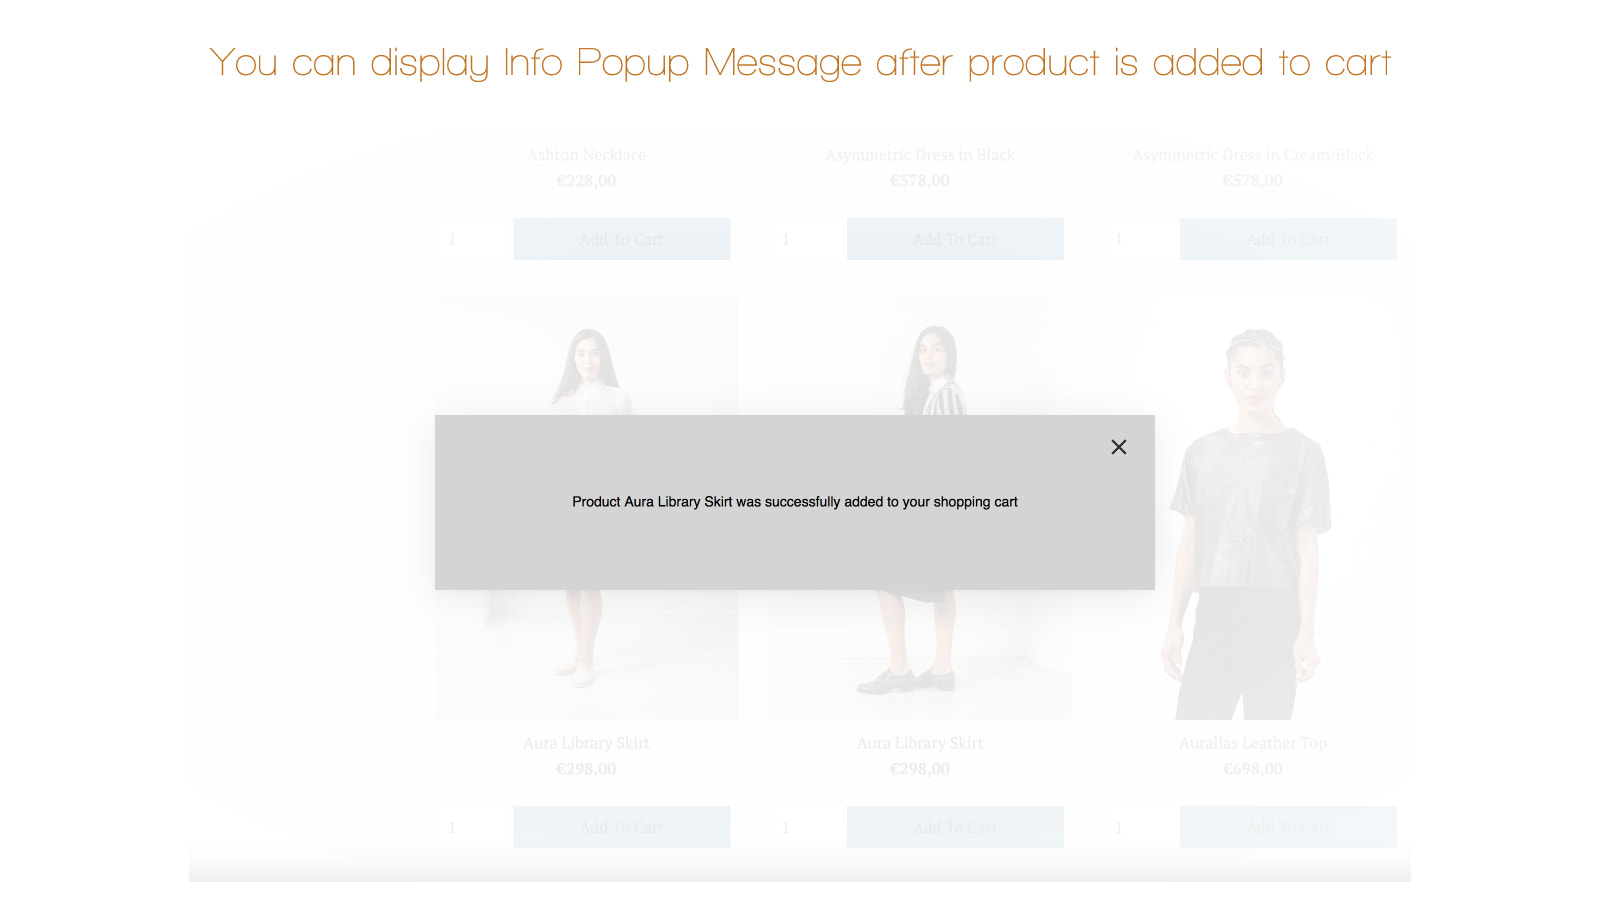 Popup Info Message after product is added to cart